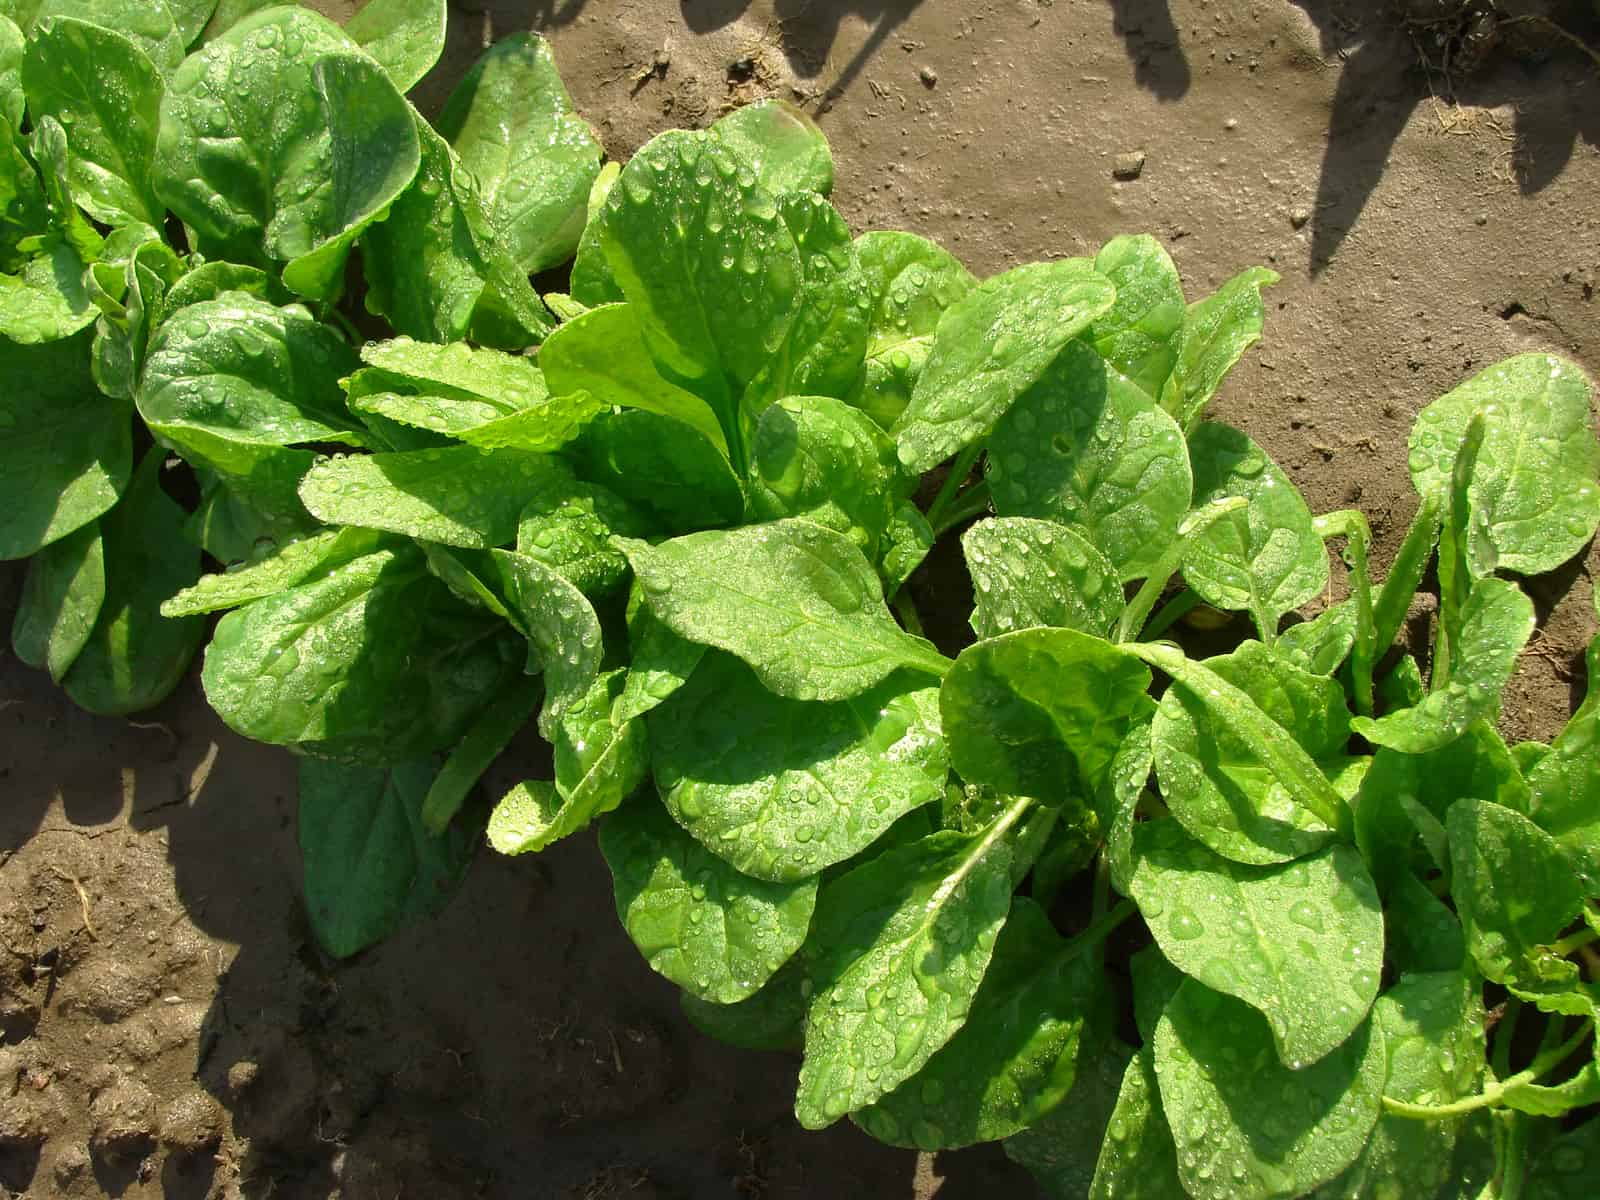 Mature spinach plants